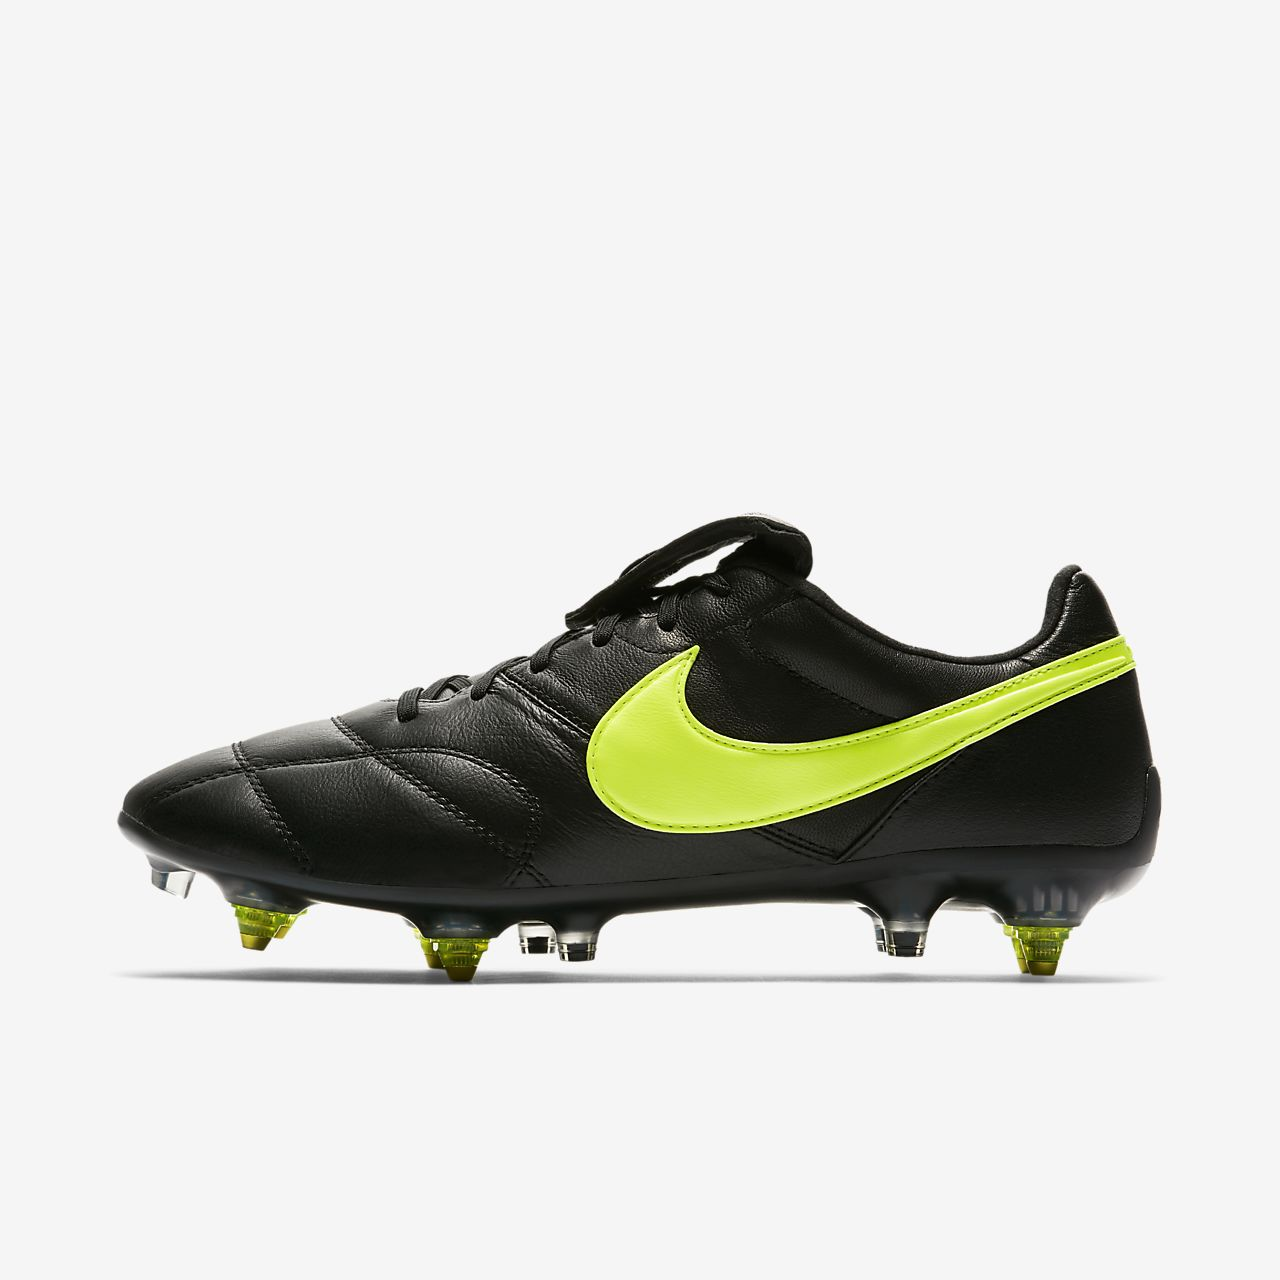 purchase cheap ef1d7 ad45f ... Nike Premier II Anti-Clog Traction SG-PRO Soft-Ground Football Boot